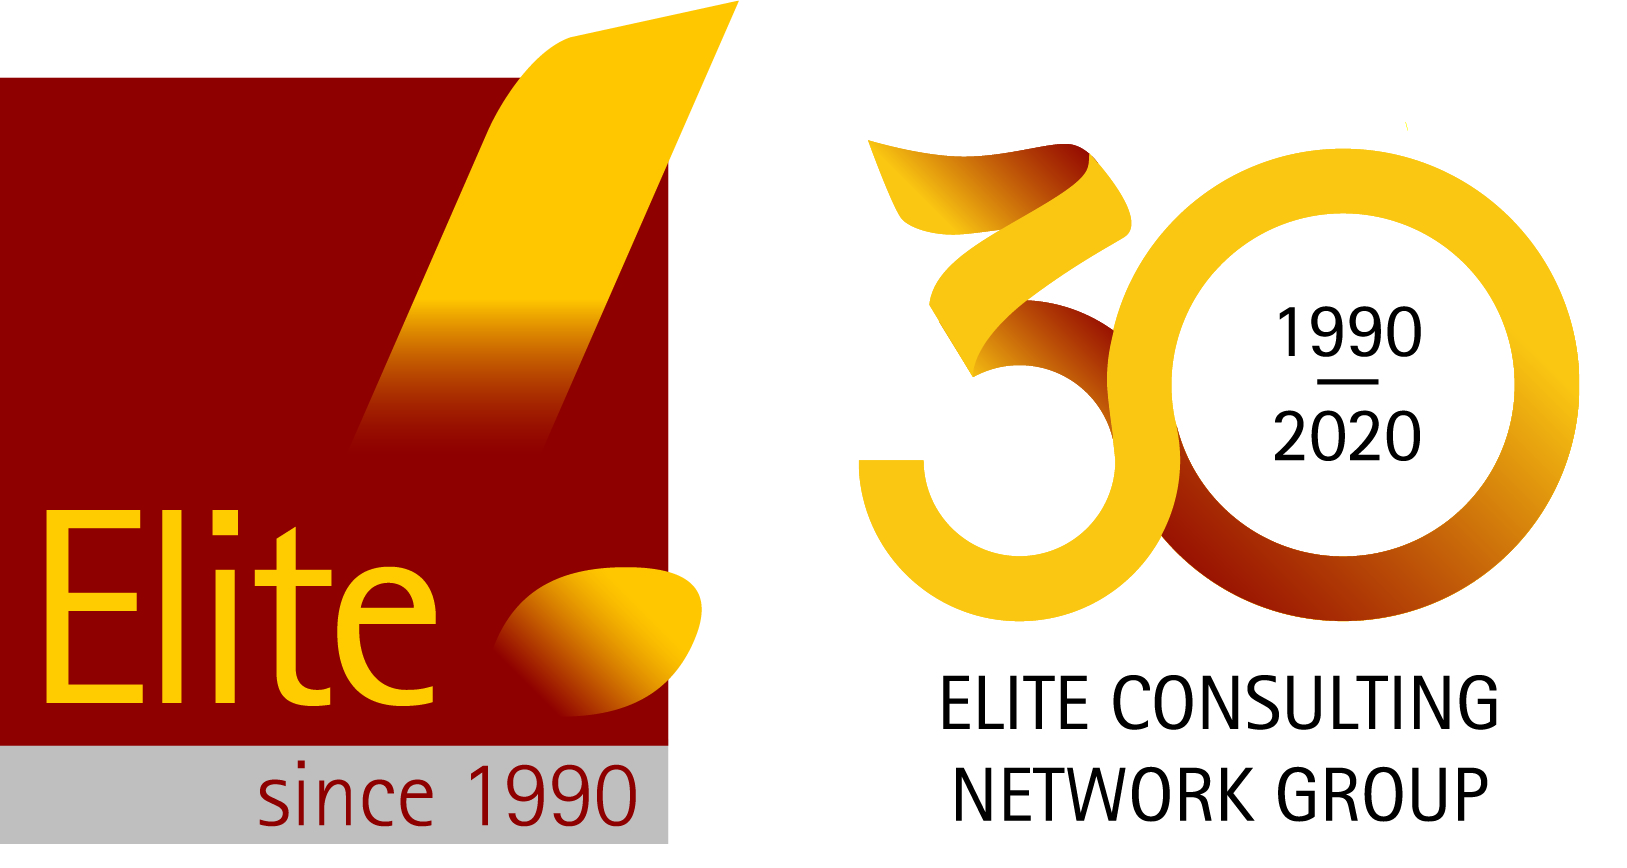 Elite Consulting since 1990